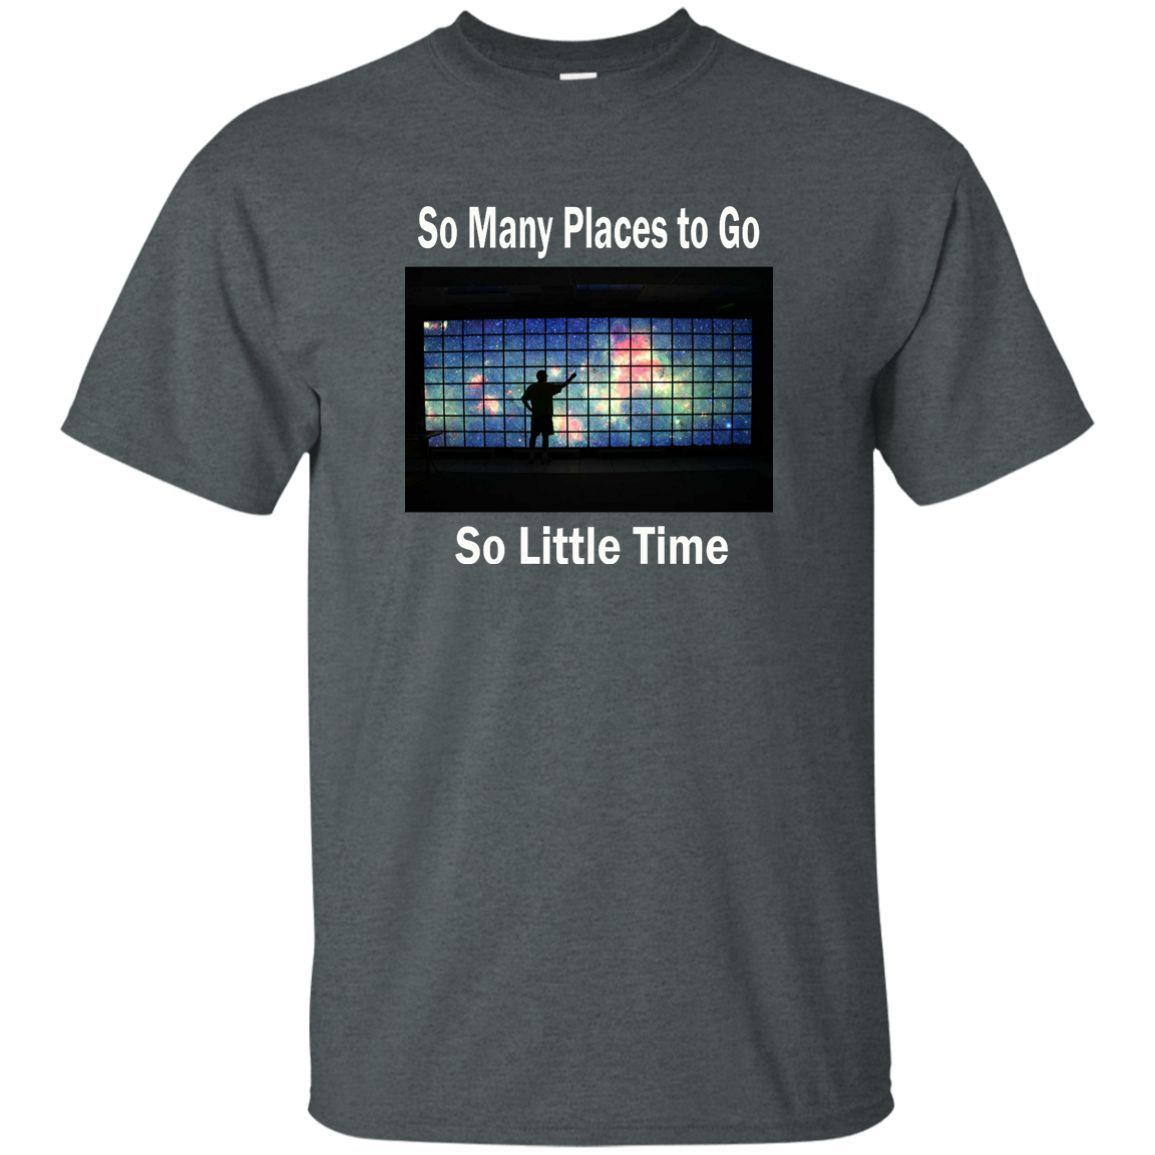 So Many Places to Go Custom Ultra Cotton T-Shirt